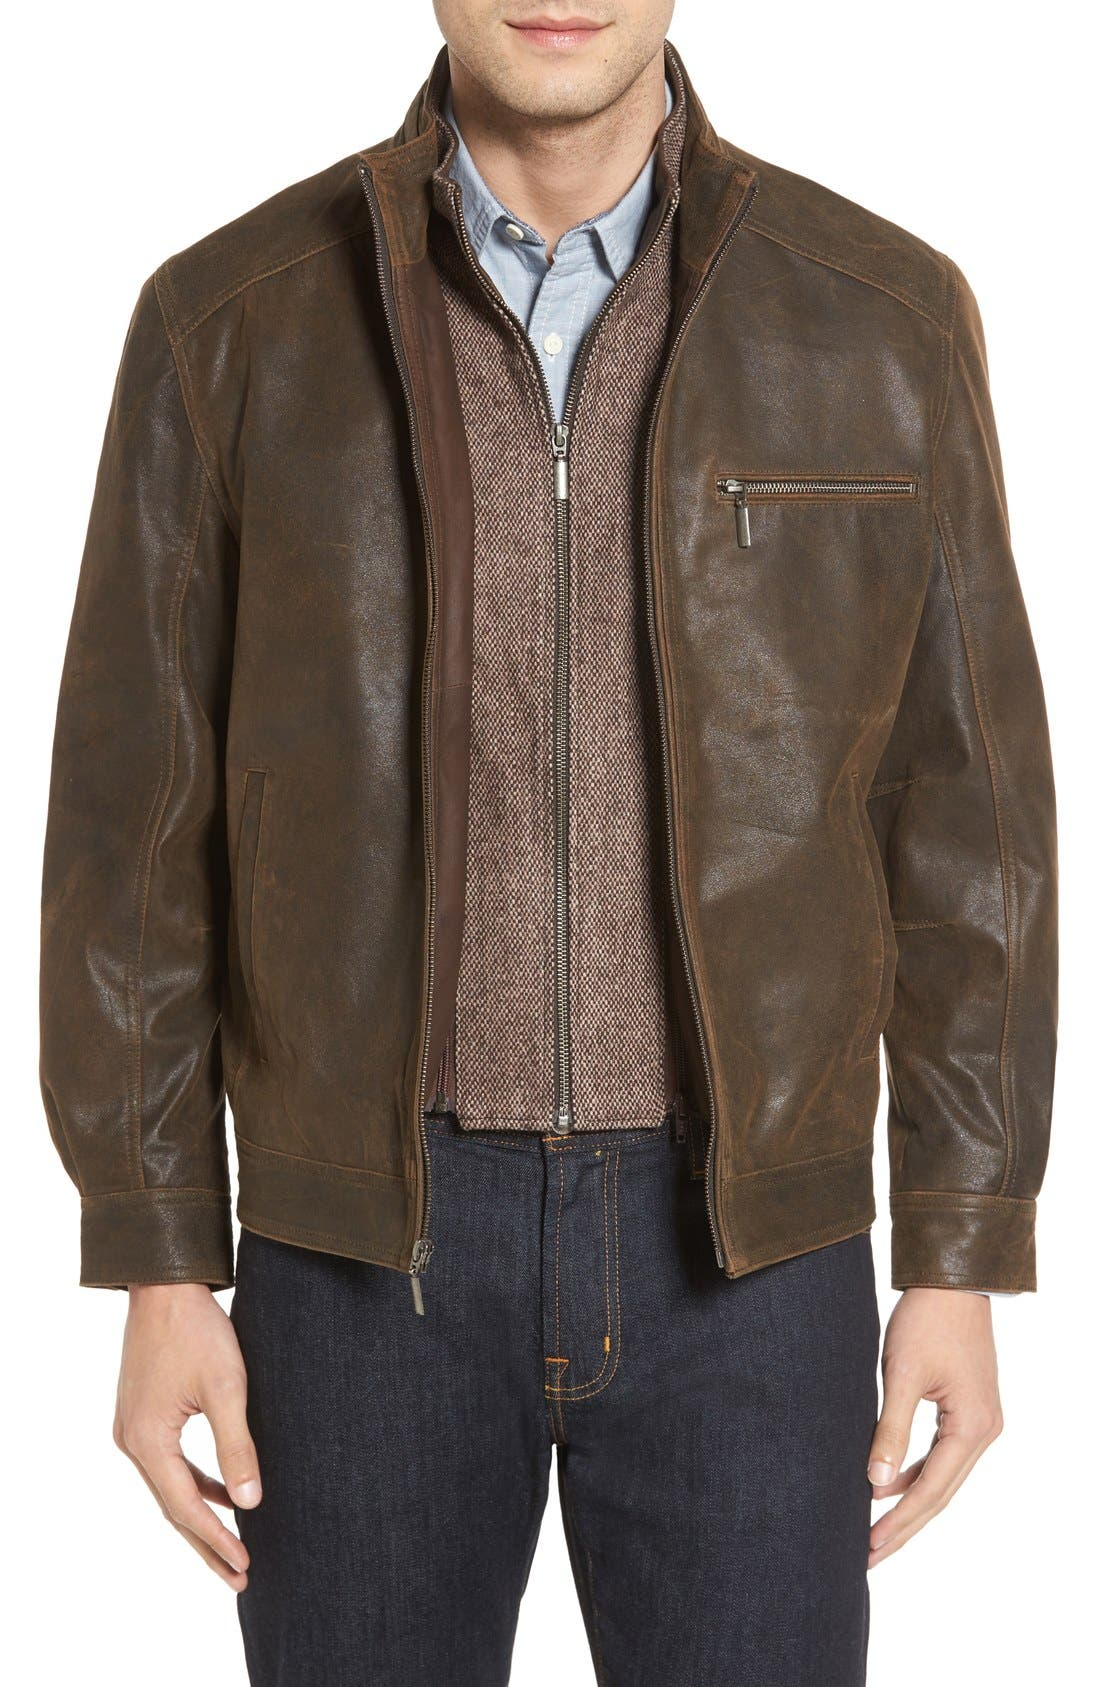 MISSANI LE COLLEZIONI Vintage Lambskin Suede Jacket with